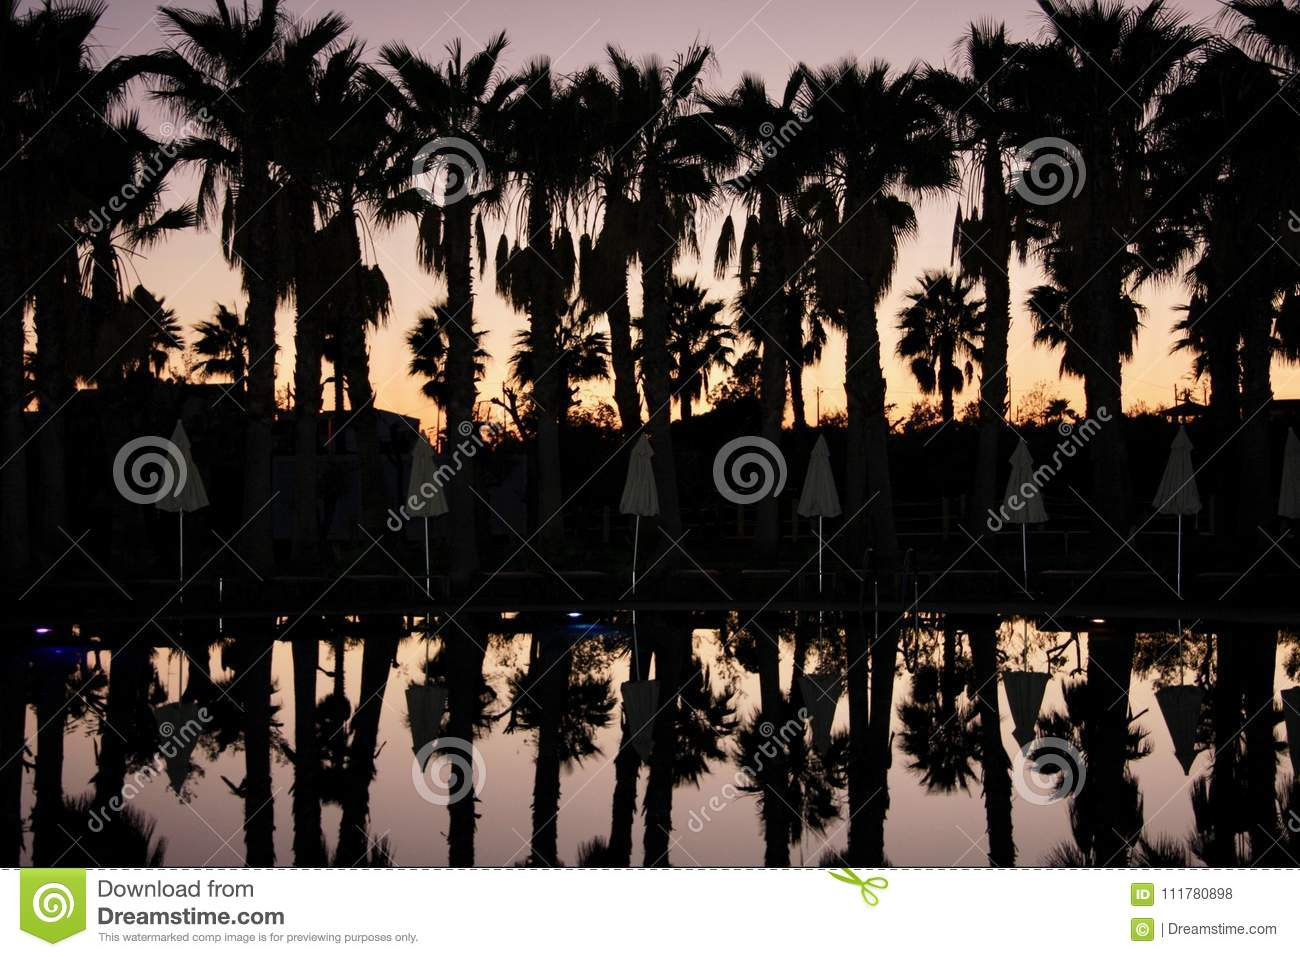 Silhouettes of palms row and umbrellas, on background of sunset sky.